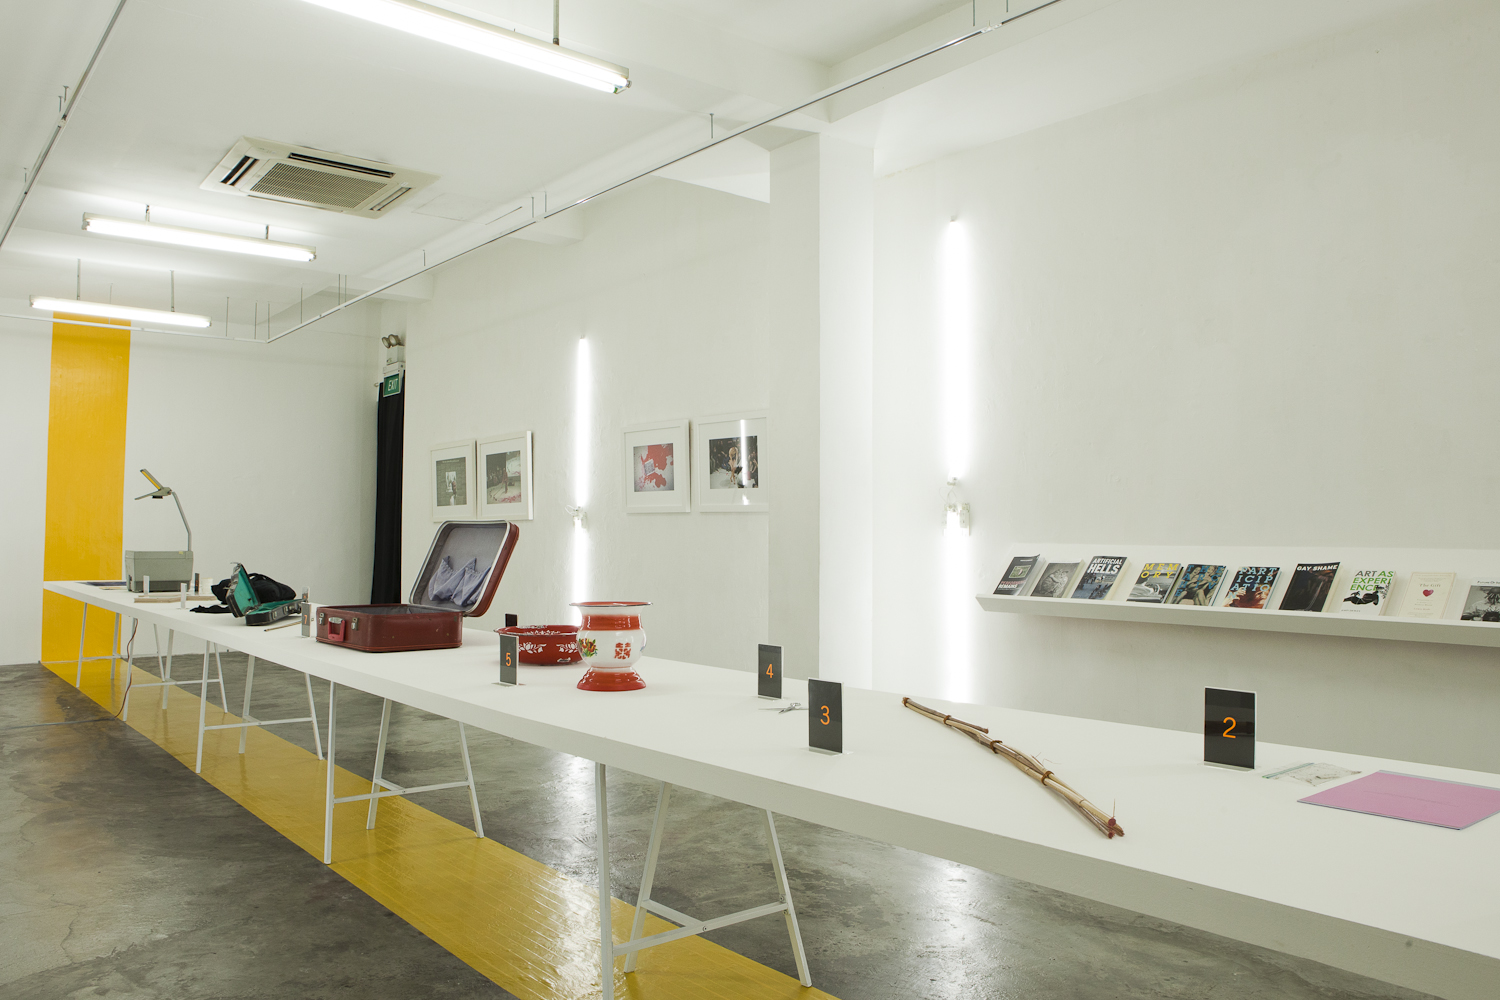 Archiving Cane (2012) - Exhibition Opening